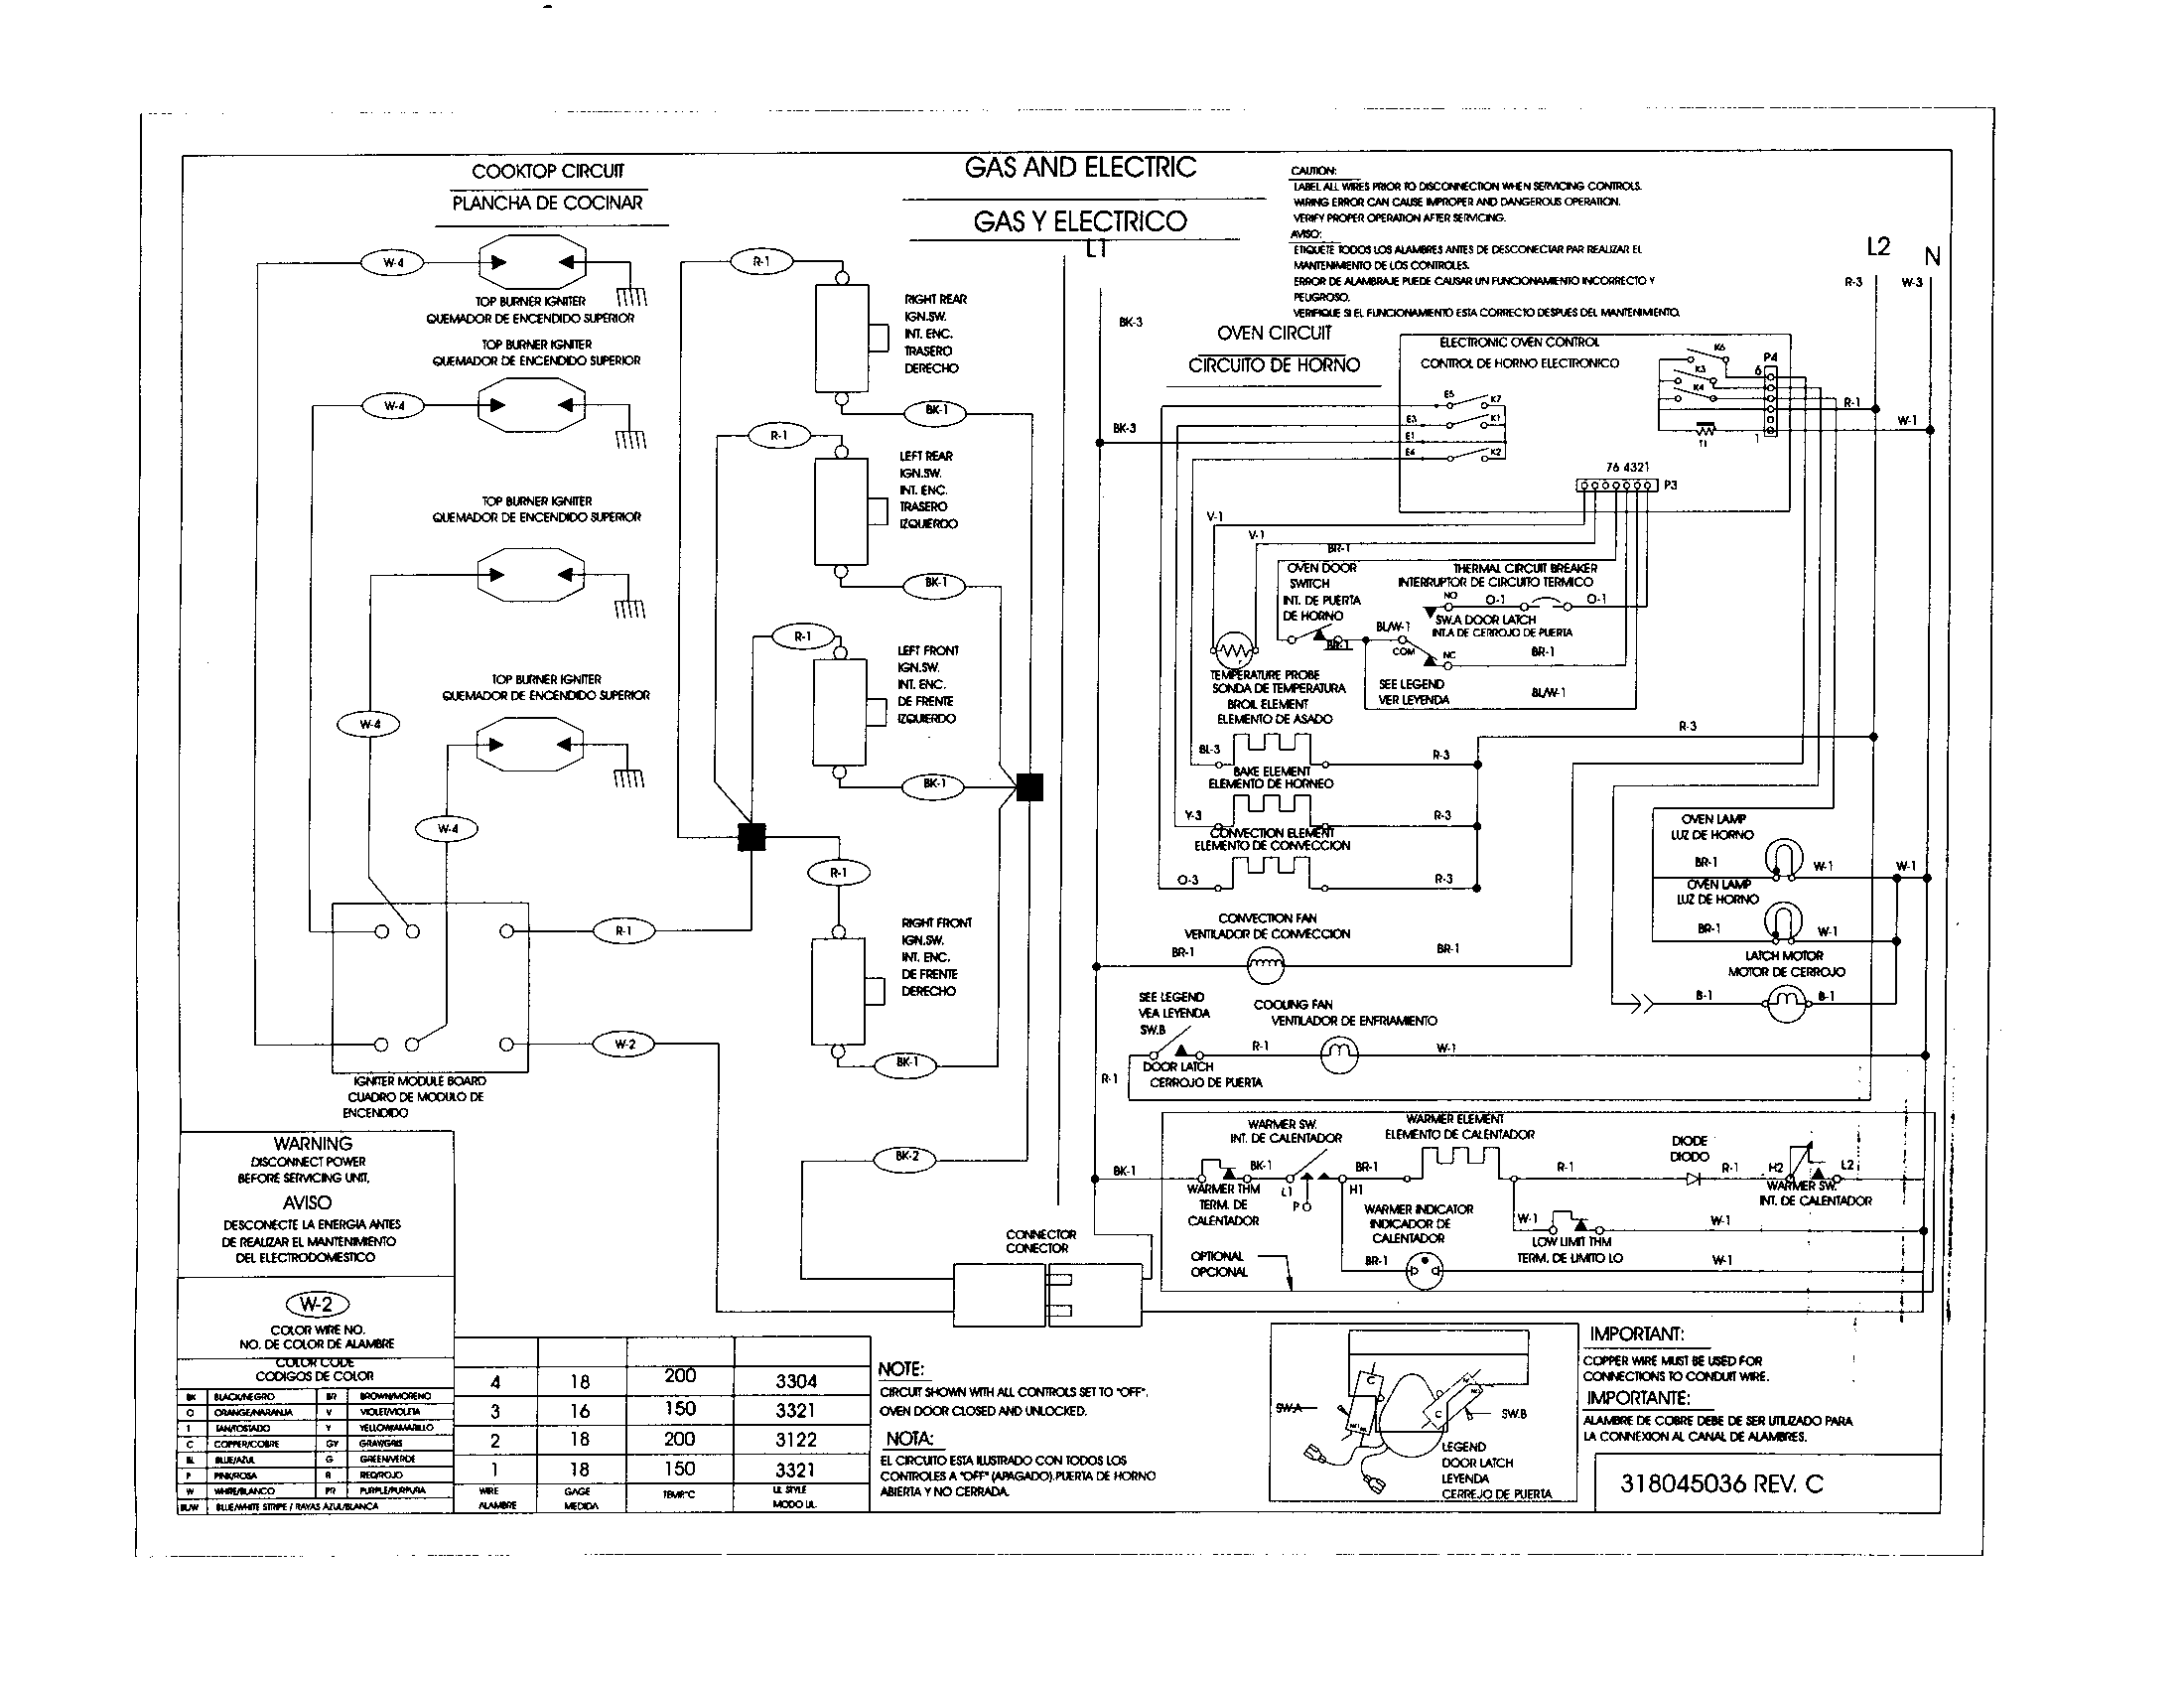 wiring diagram of whirlpool refrigerator images wiring diagram chef oven parts diagram as well whirlpool refrigerator wiring